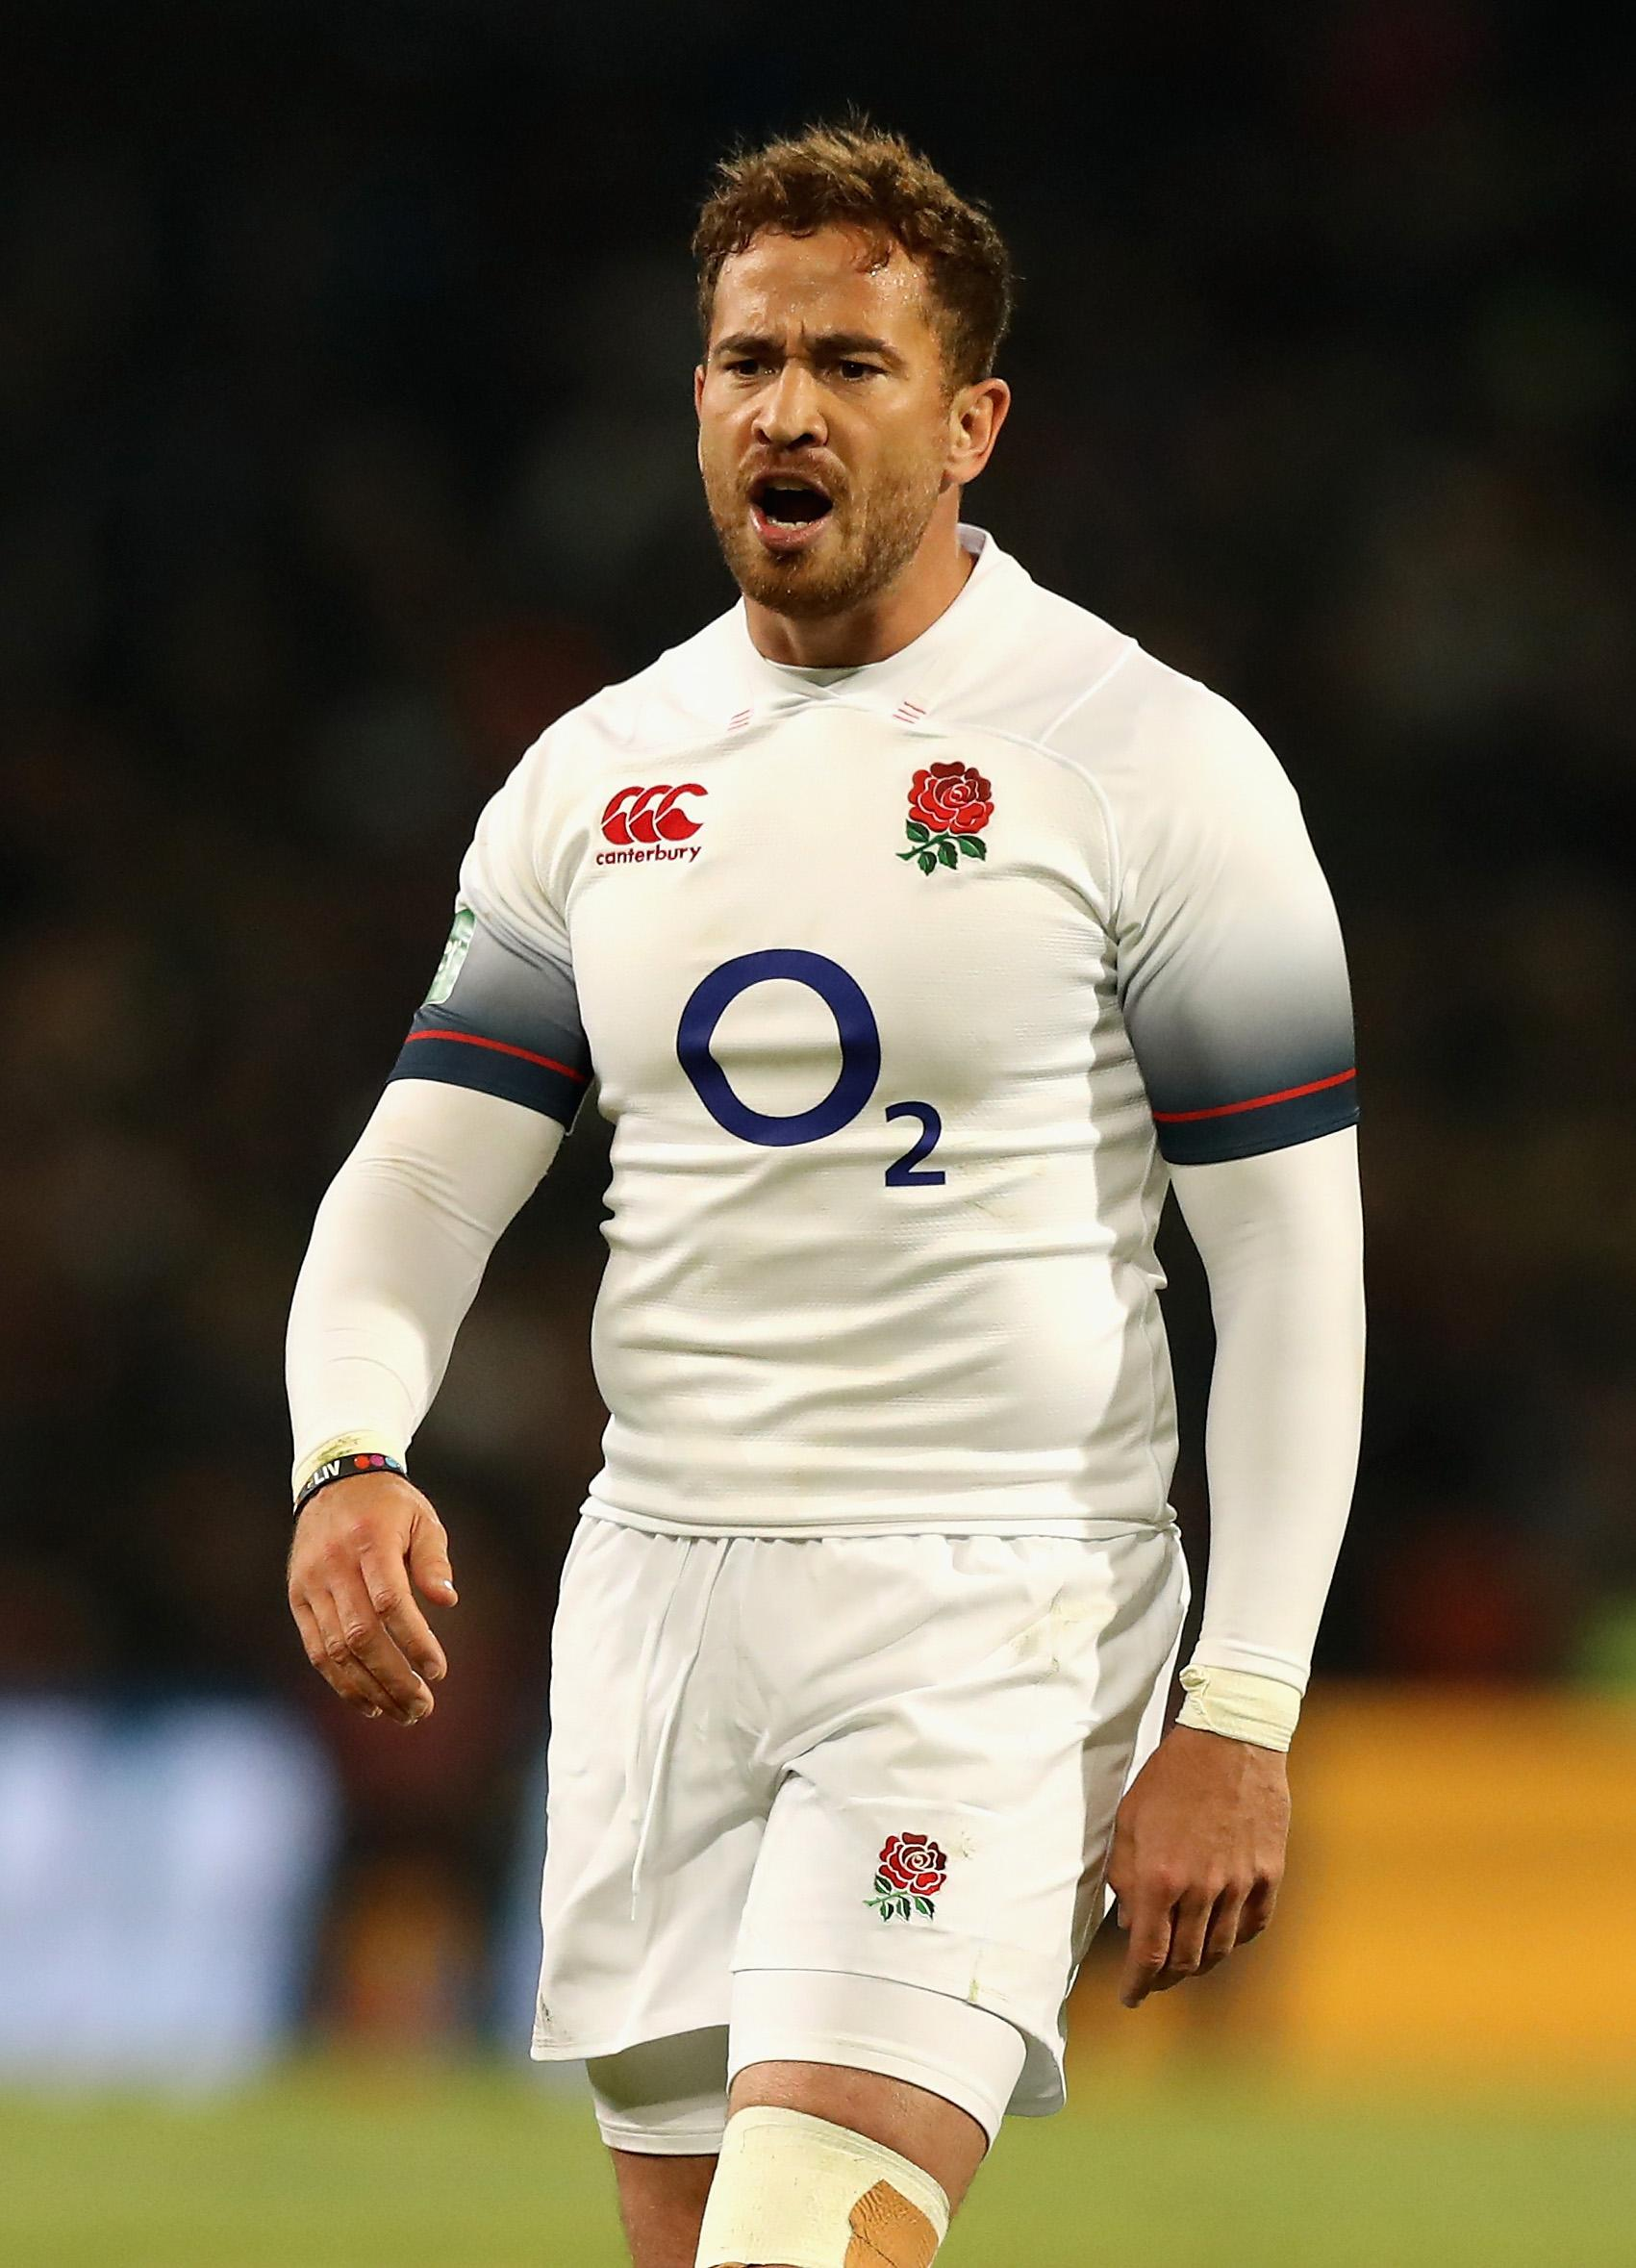 Danny Cipriani was axed by Eddie Jones this autumn - despite his heroics in the Third Test against South Africa this summer